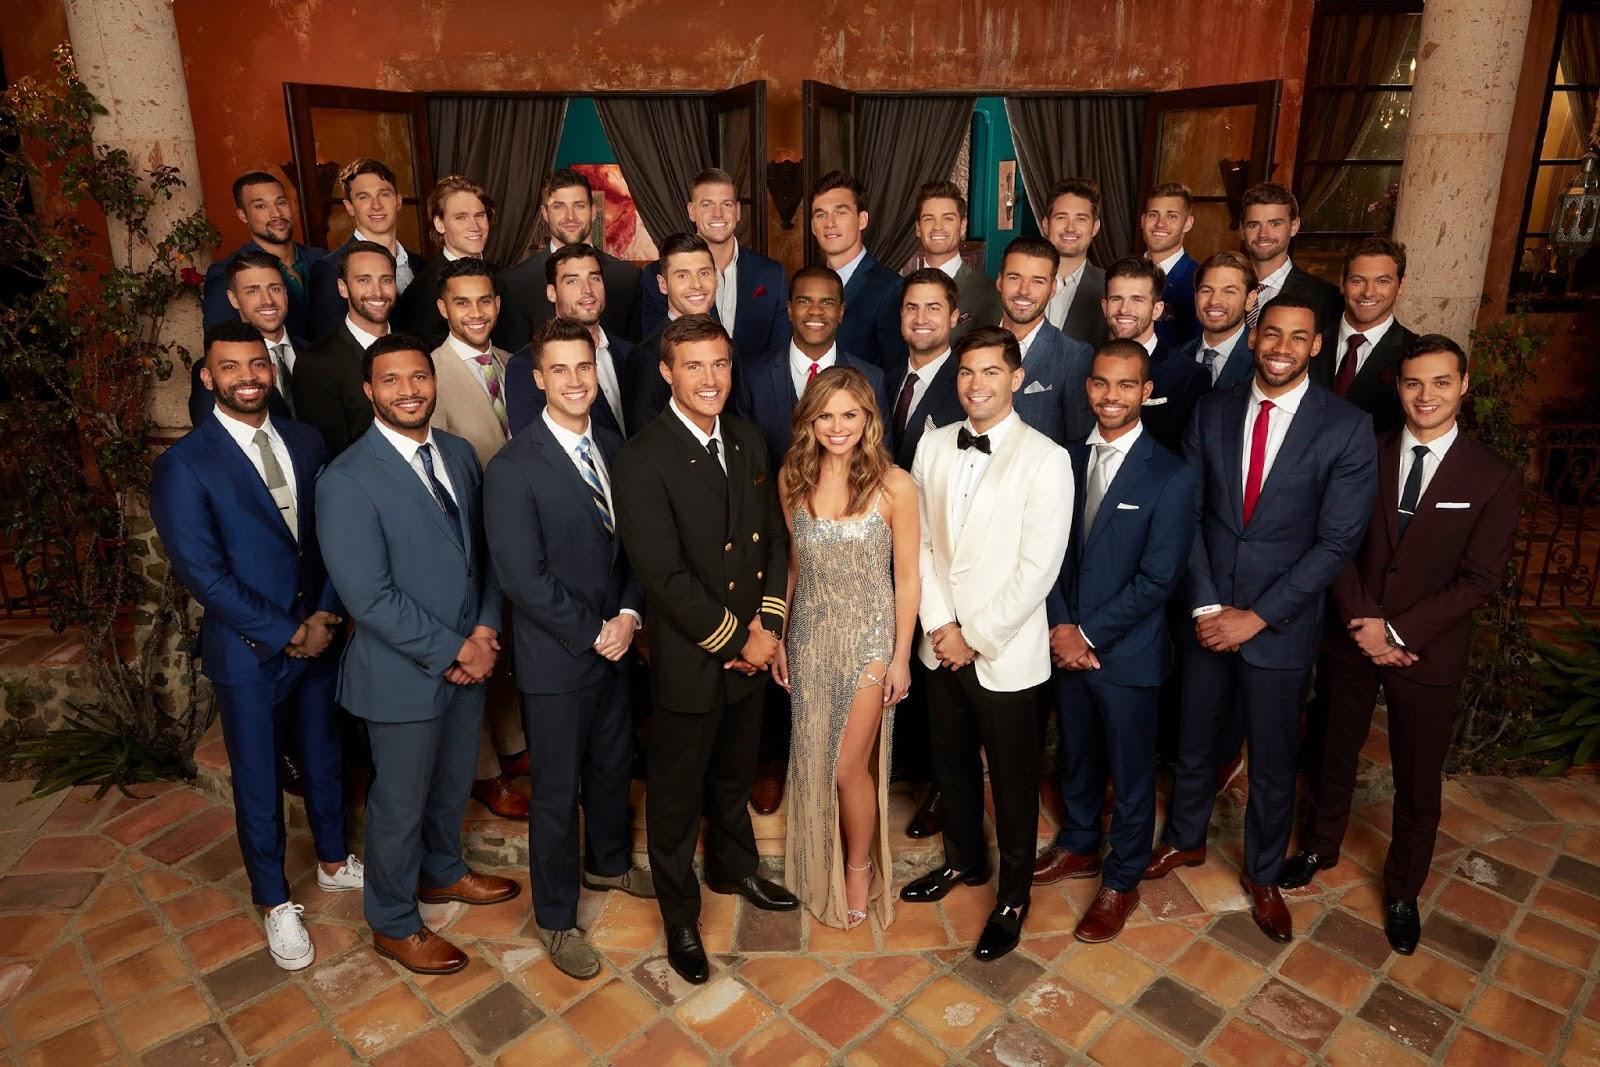 ABC Summer 2019 Ratings Release